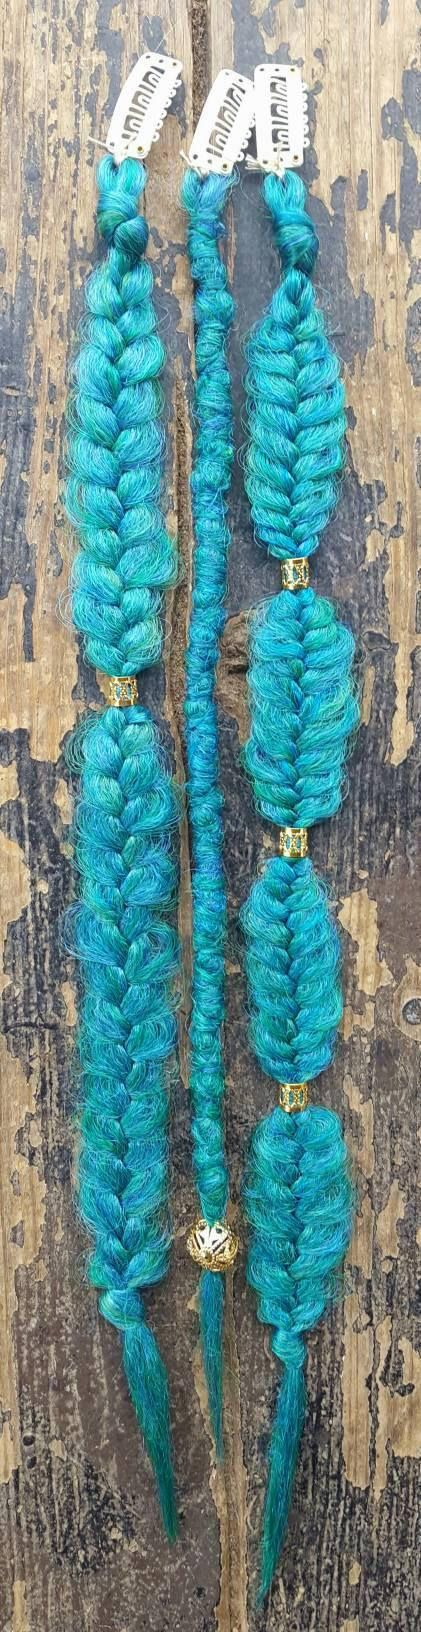 Tinkerbell inspired fairylocs Set of 3 Dreadlocks - 1 Braids - 2 Length - 14-18 Colors - emerald, sideshow, mint Embellishments - gold cuffs, rose Clip in - optional at checkout All dreads are made to order with the same materials and will be beautiful and unique in their own way